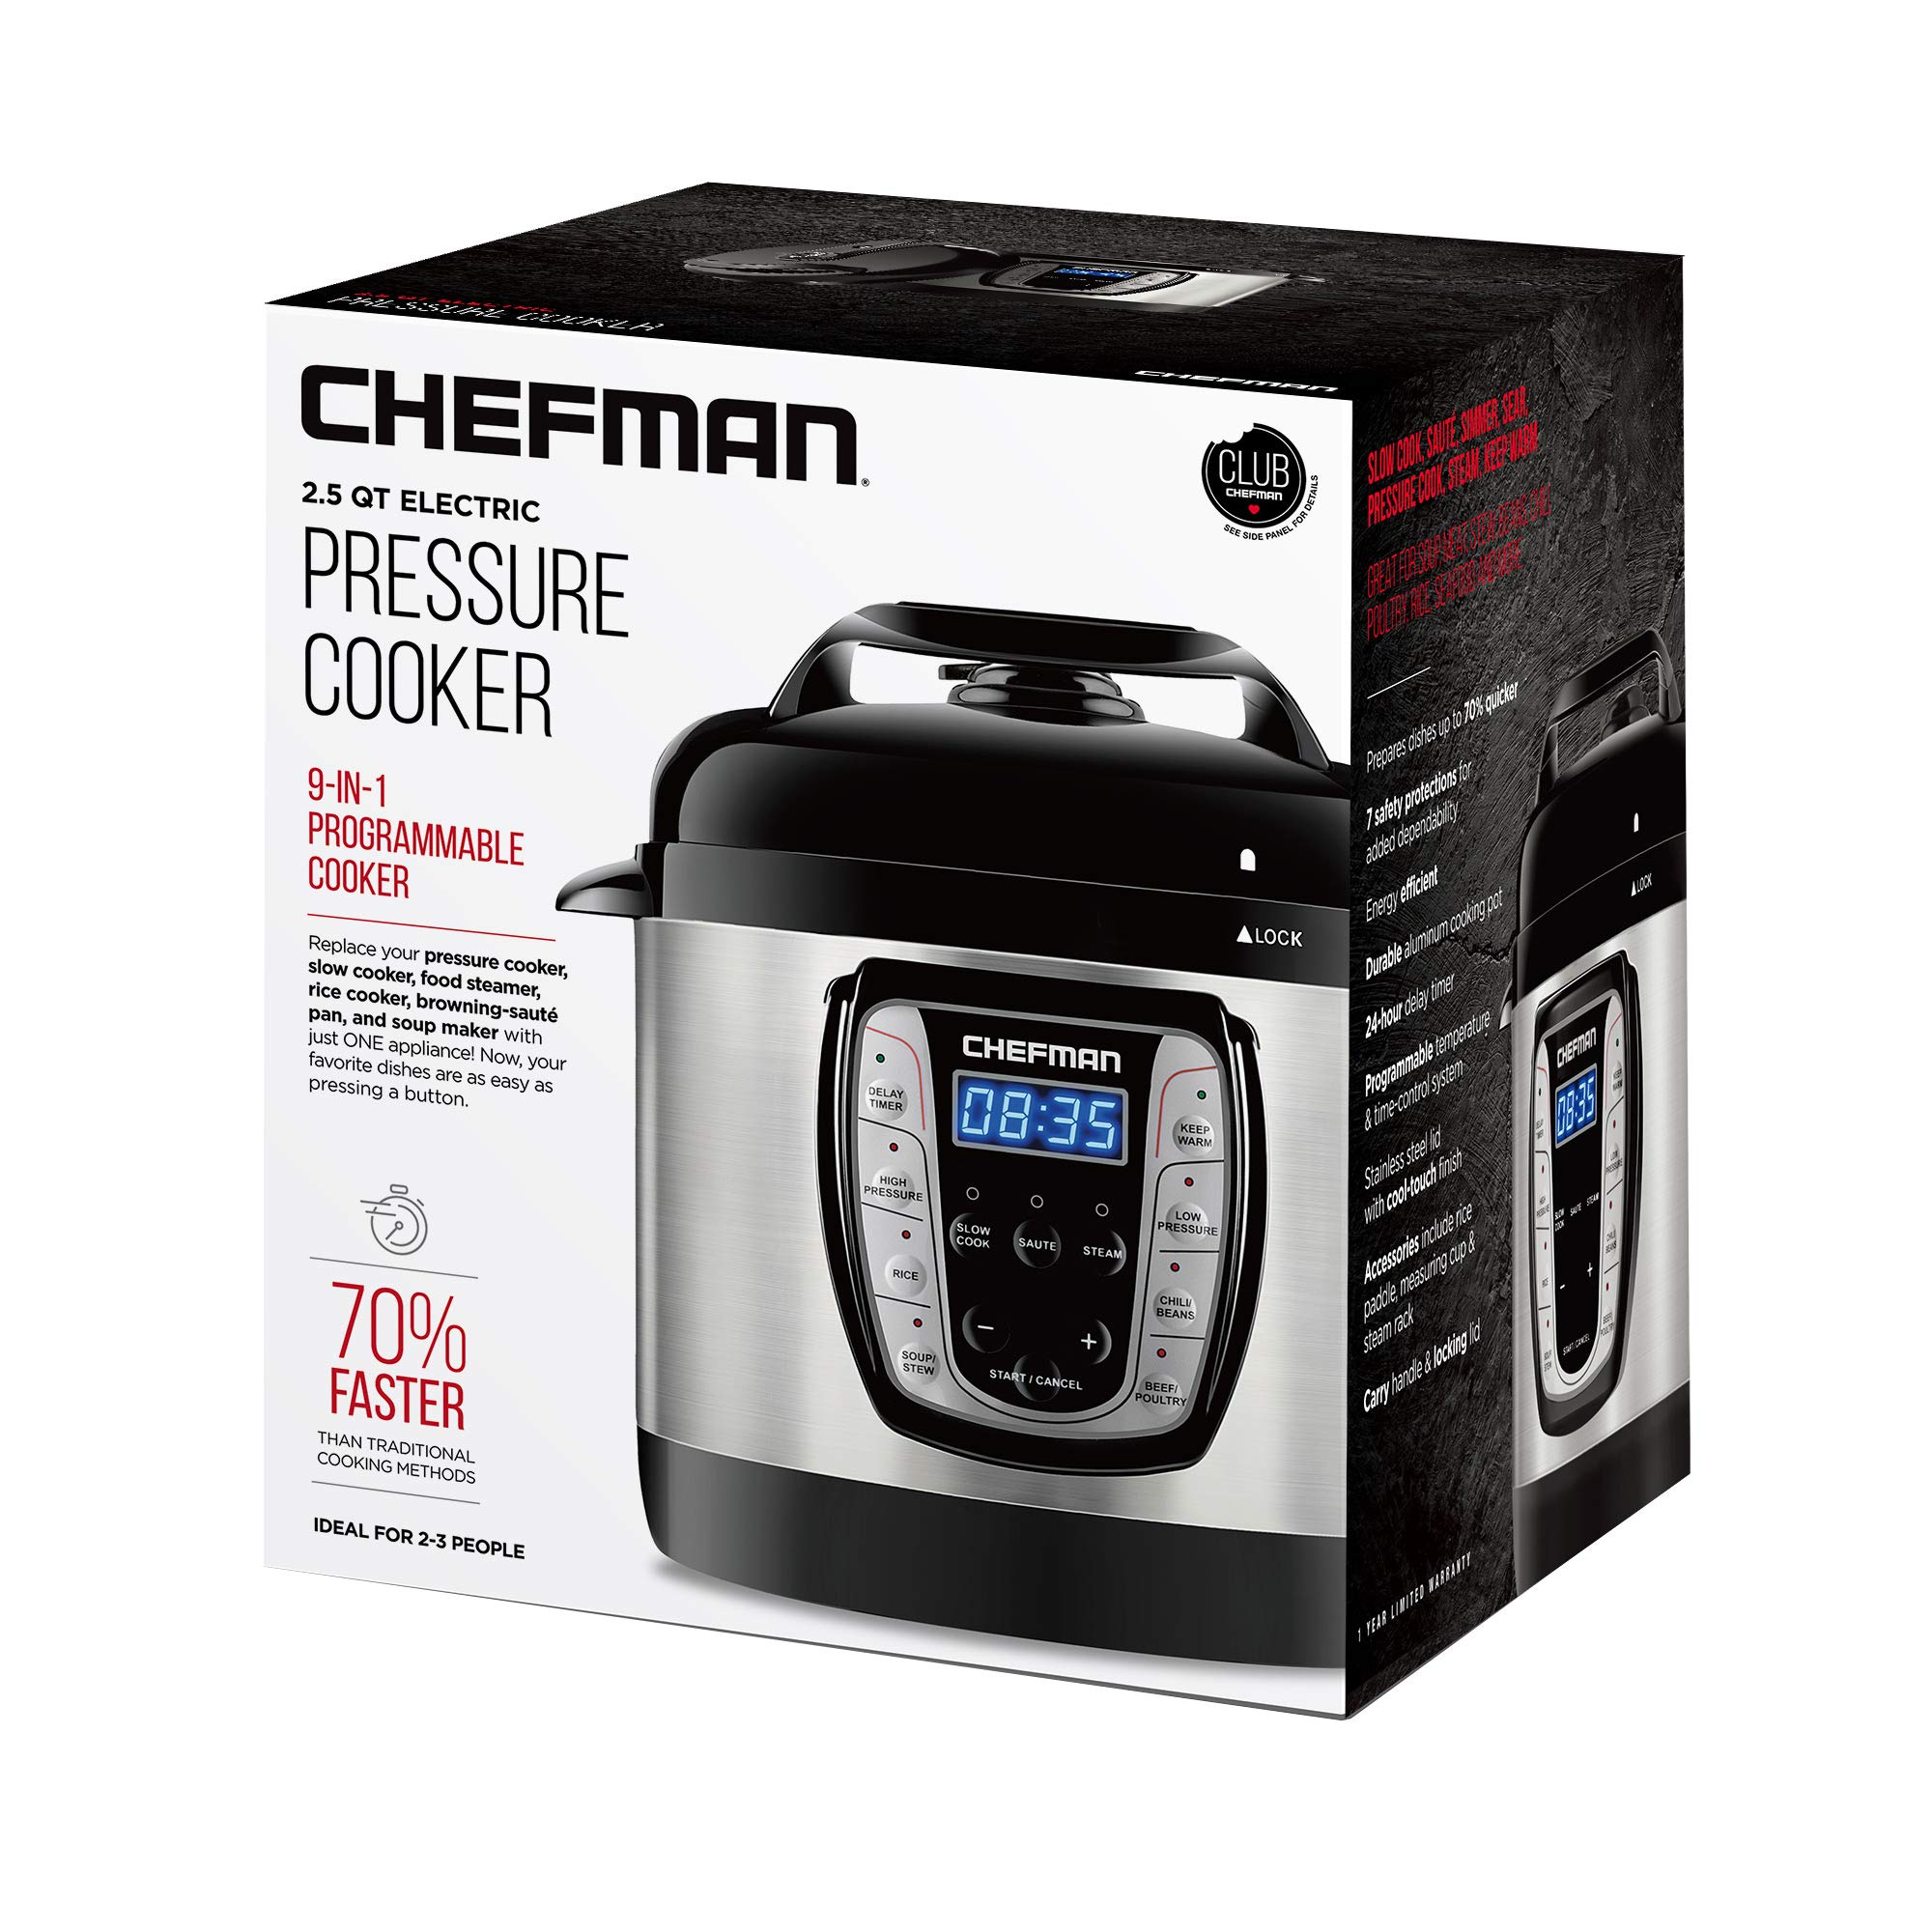 Chefman 2.5 Qt. Electric Pressure Programmable Multicooker, Prepare Dishes in an Instant, Aluminum Pot Multifunctional Slow, Rice Cooker/Steamer, Sauté, Soup Maker by Chefman (Image #9)